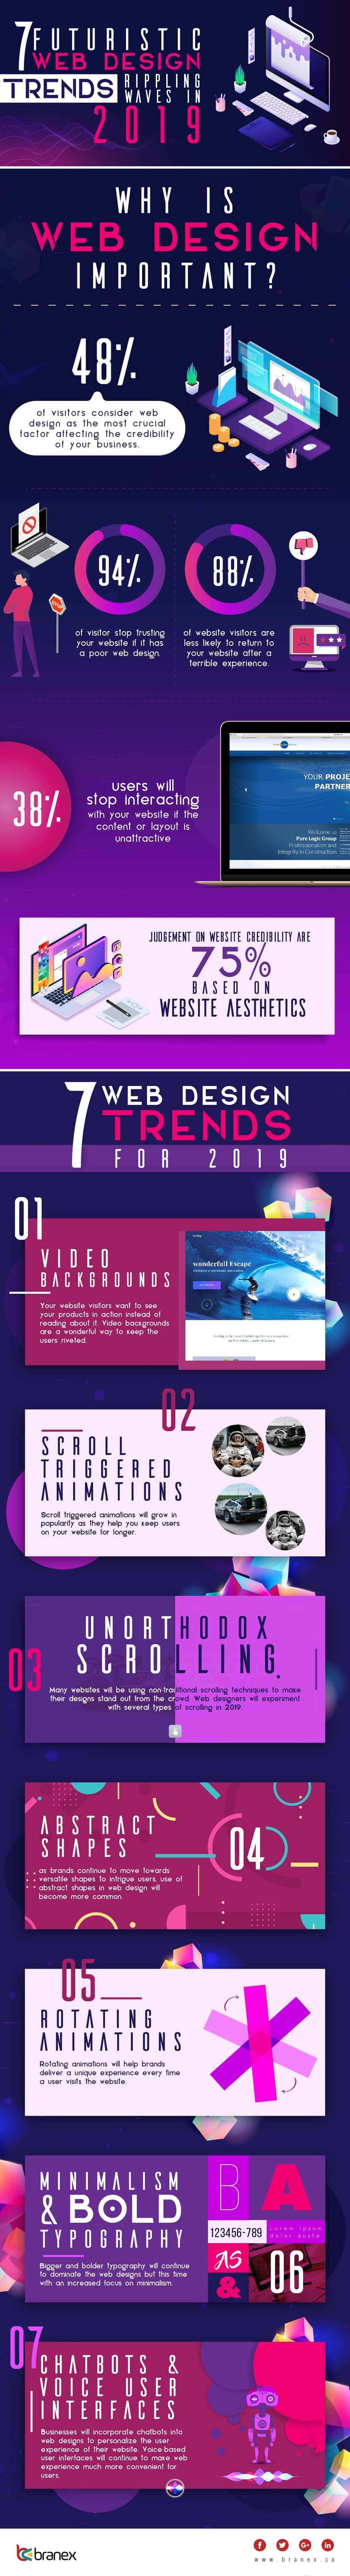 7-Futuristic-Web-Design-Trends-Looming-over-the-Horizon-of-2019